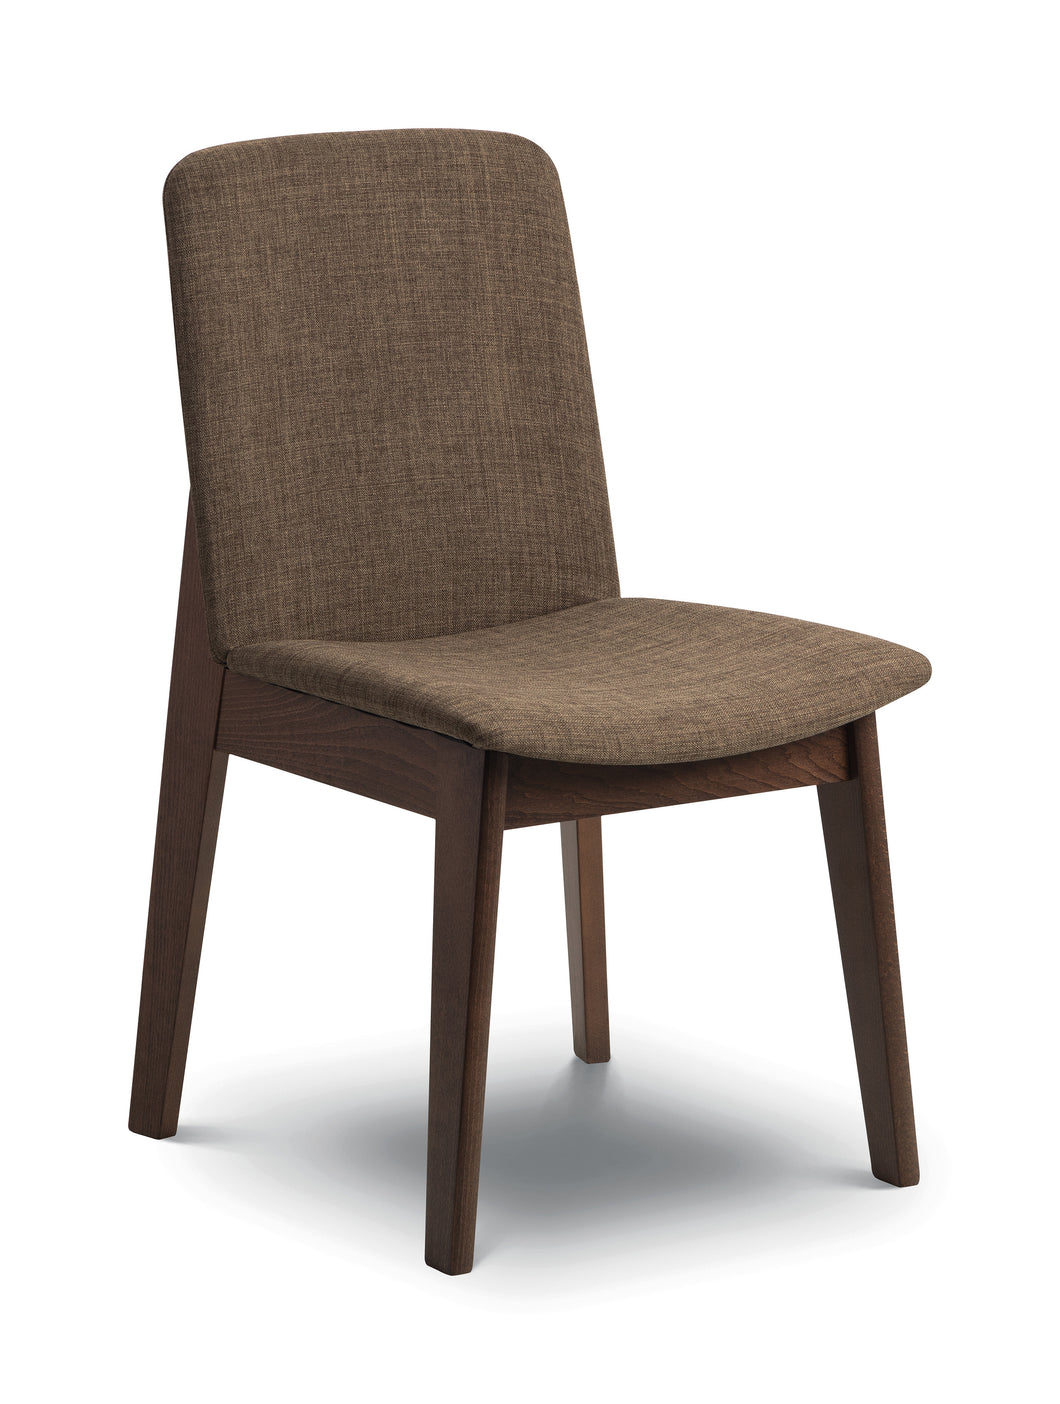 Kensington Dining Chair - Property Letting Furniture